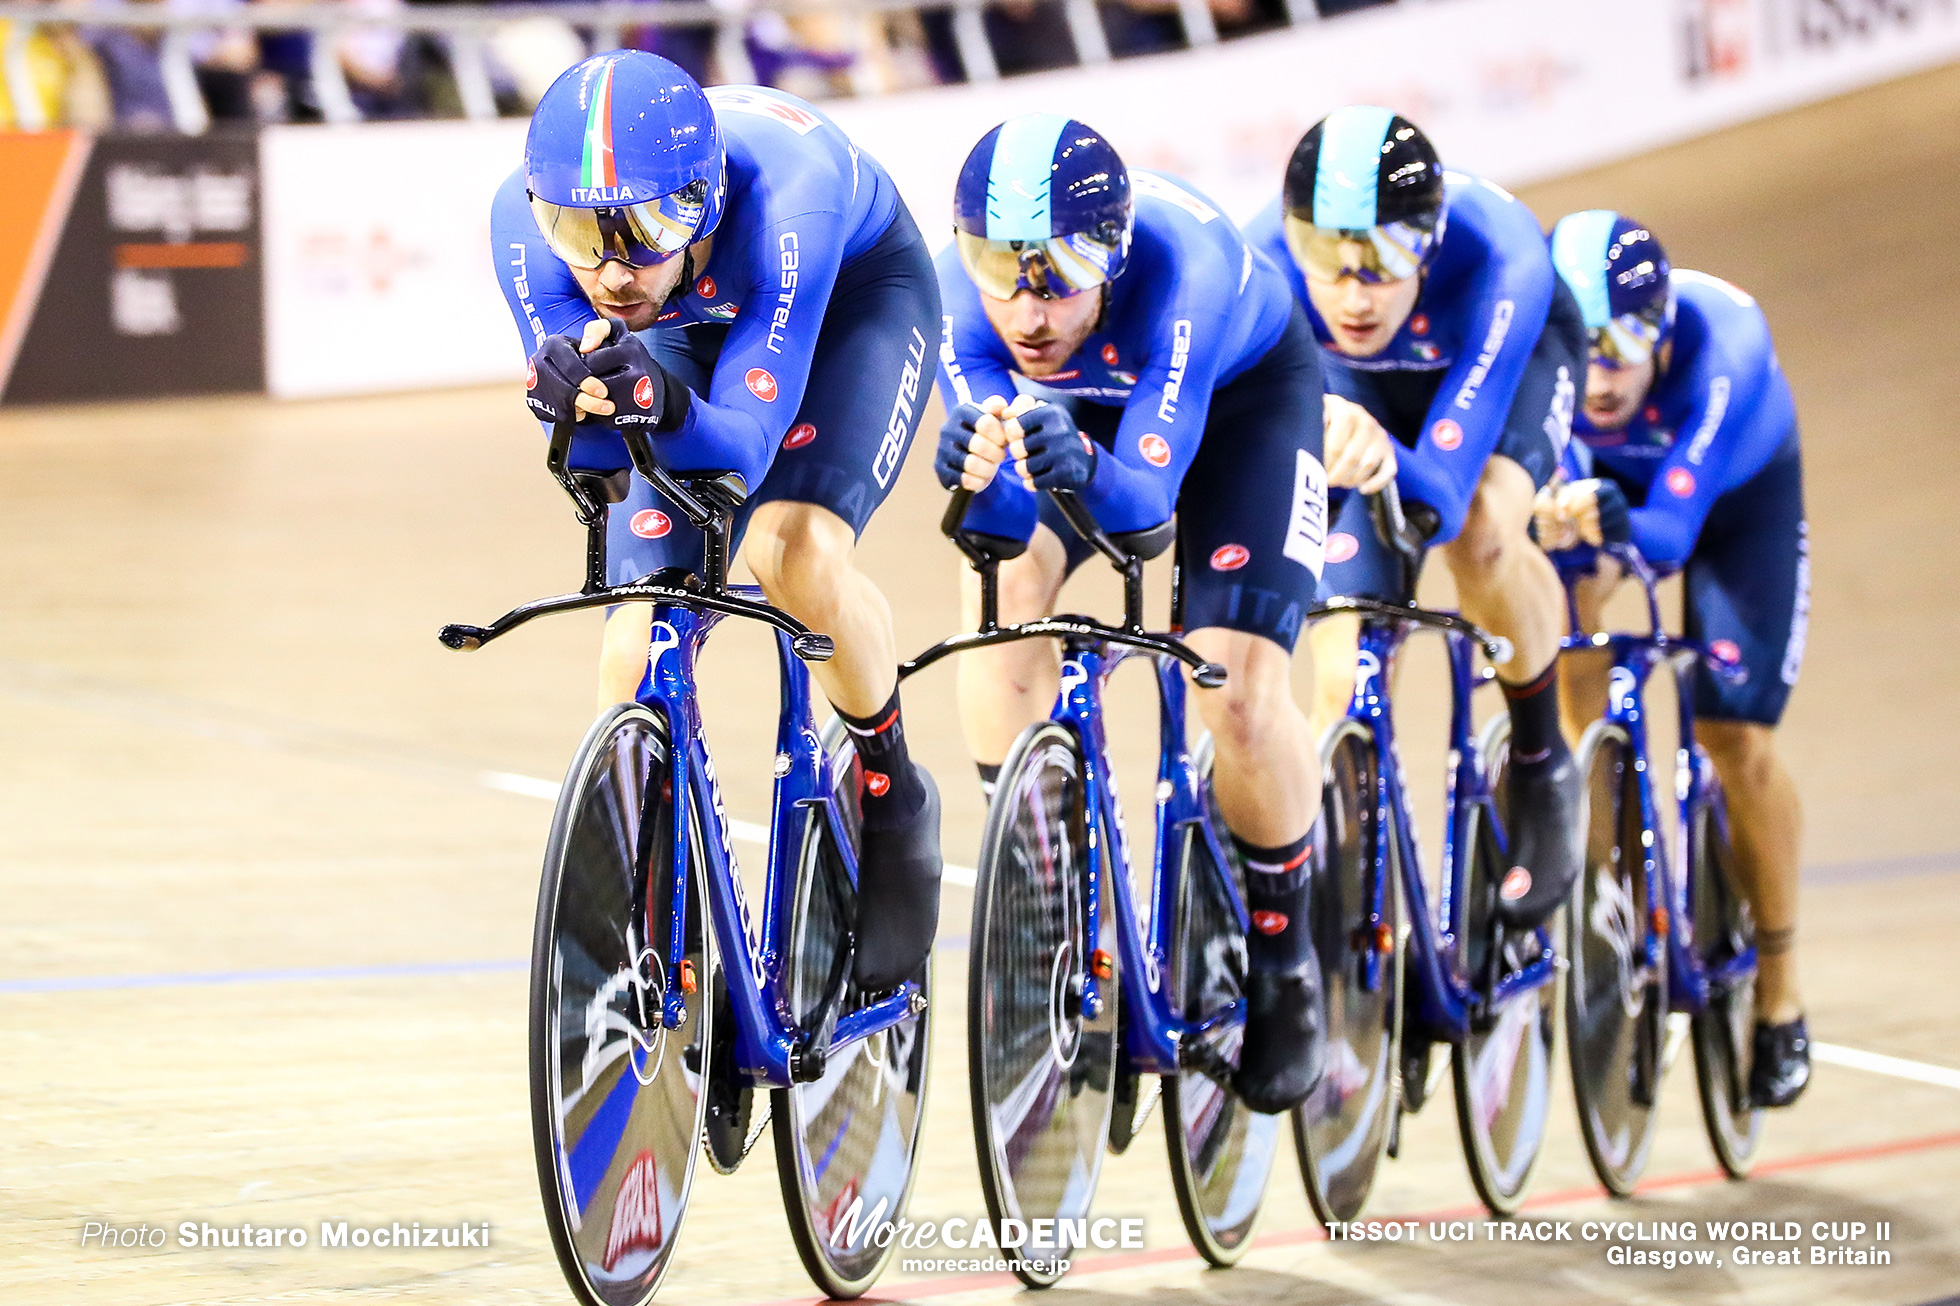 Italy / Men's Team Pursuit / TISSOT UCI TRACK CYCLING WORLD CUP II, Glasgow, Great Britain